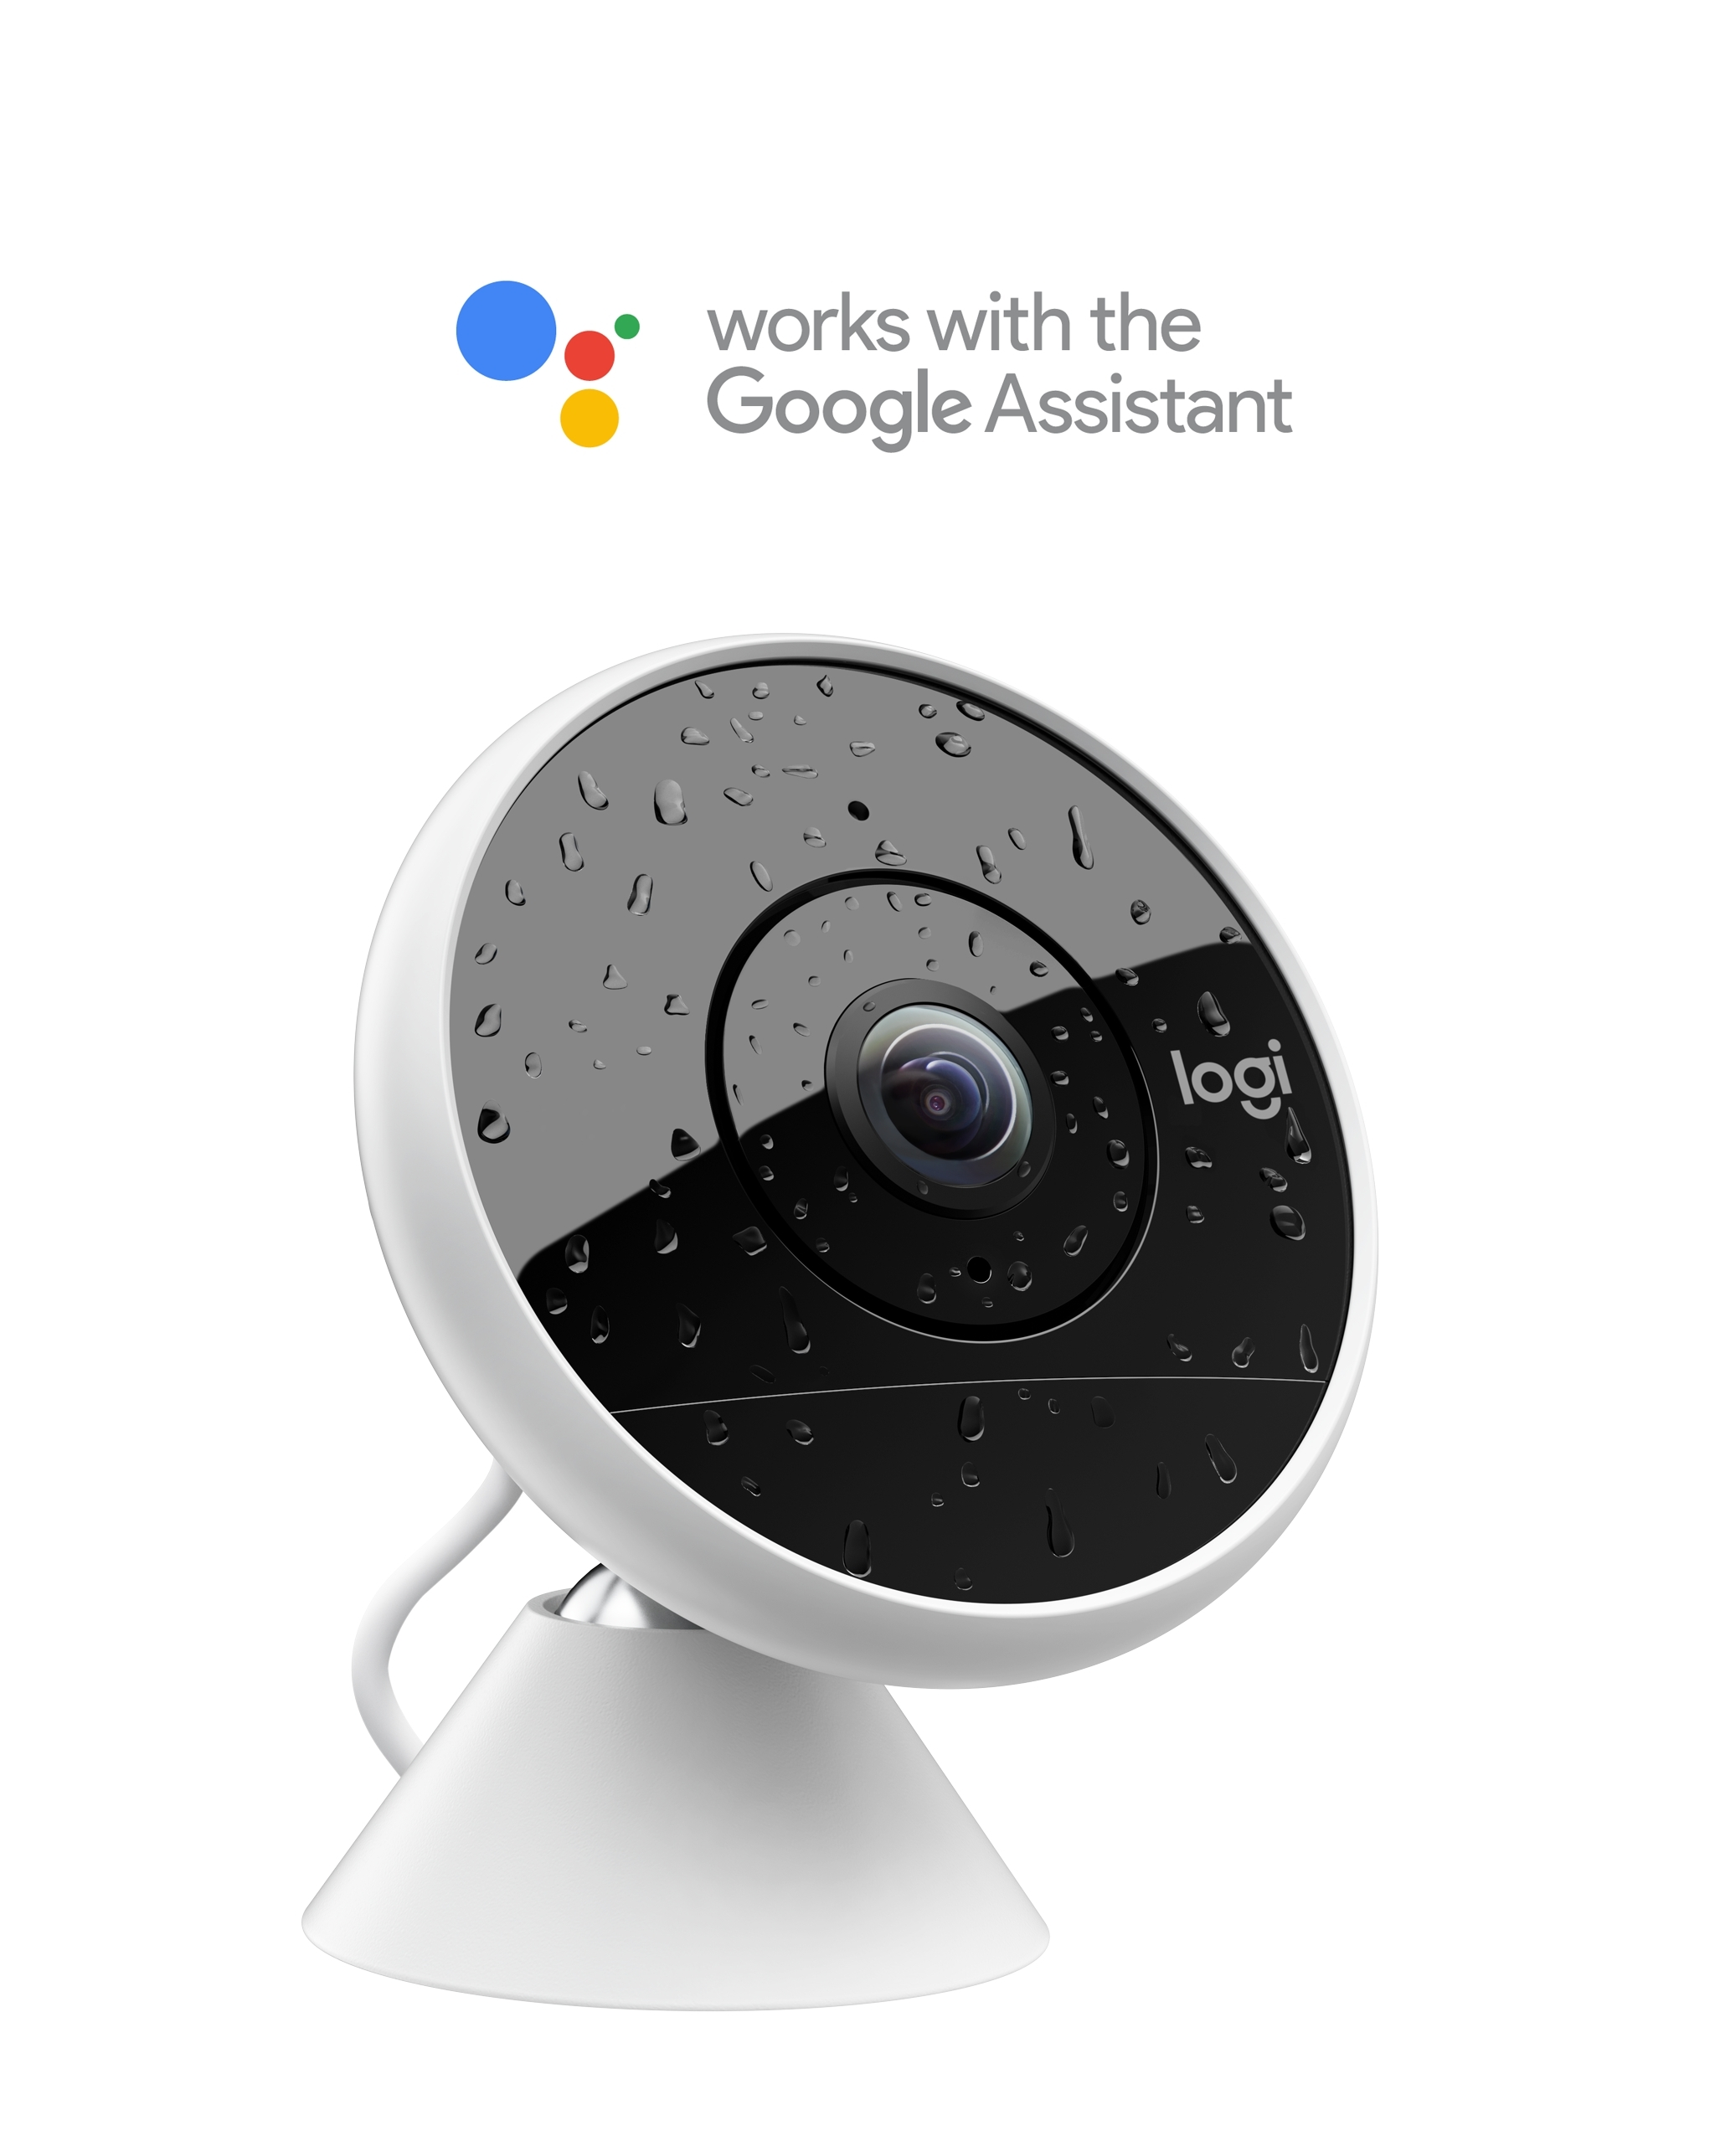 Logitech Makes Home Security Smarter with the Google